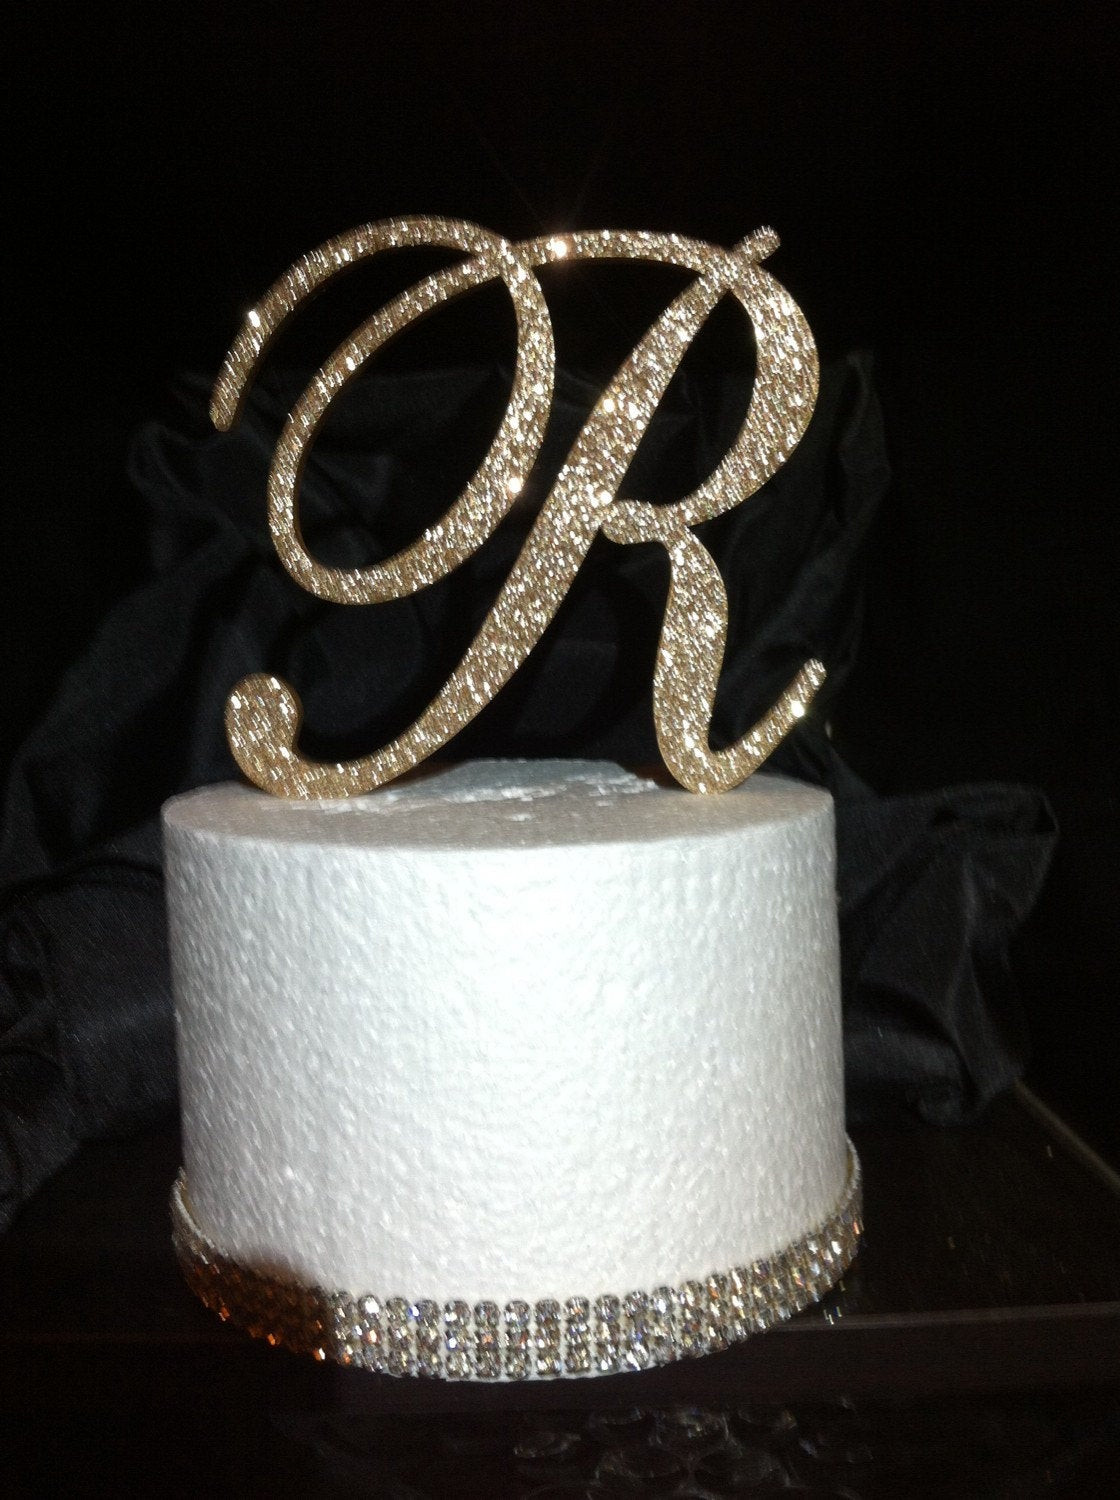 Best ideas about Glitter Birthday Cake . Save or Pin FREE Shipping in US Glitter Cake Topper Monogram Cake Now.